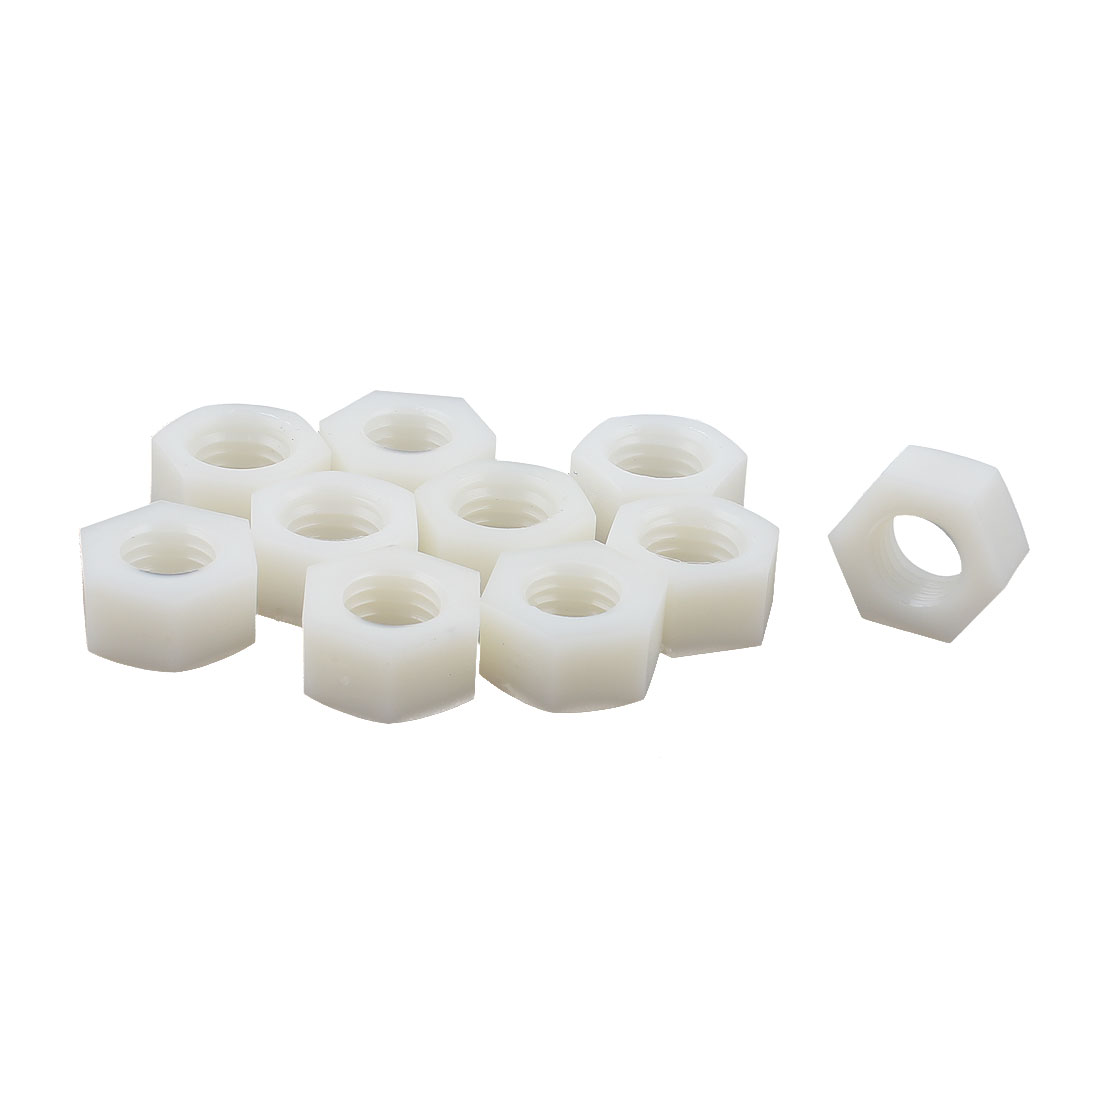 10 Pcs Nylon M12 Threaded Hexagon Screws Hex Nuts Off-white - image 1 of 1